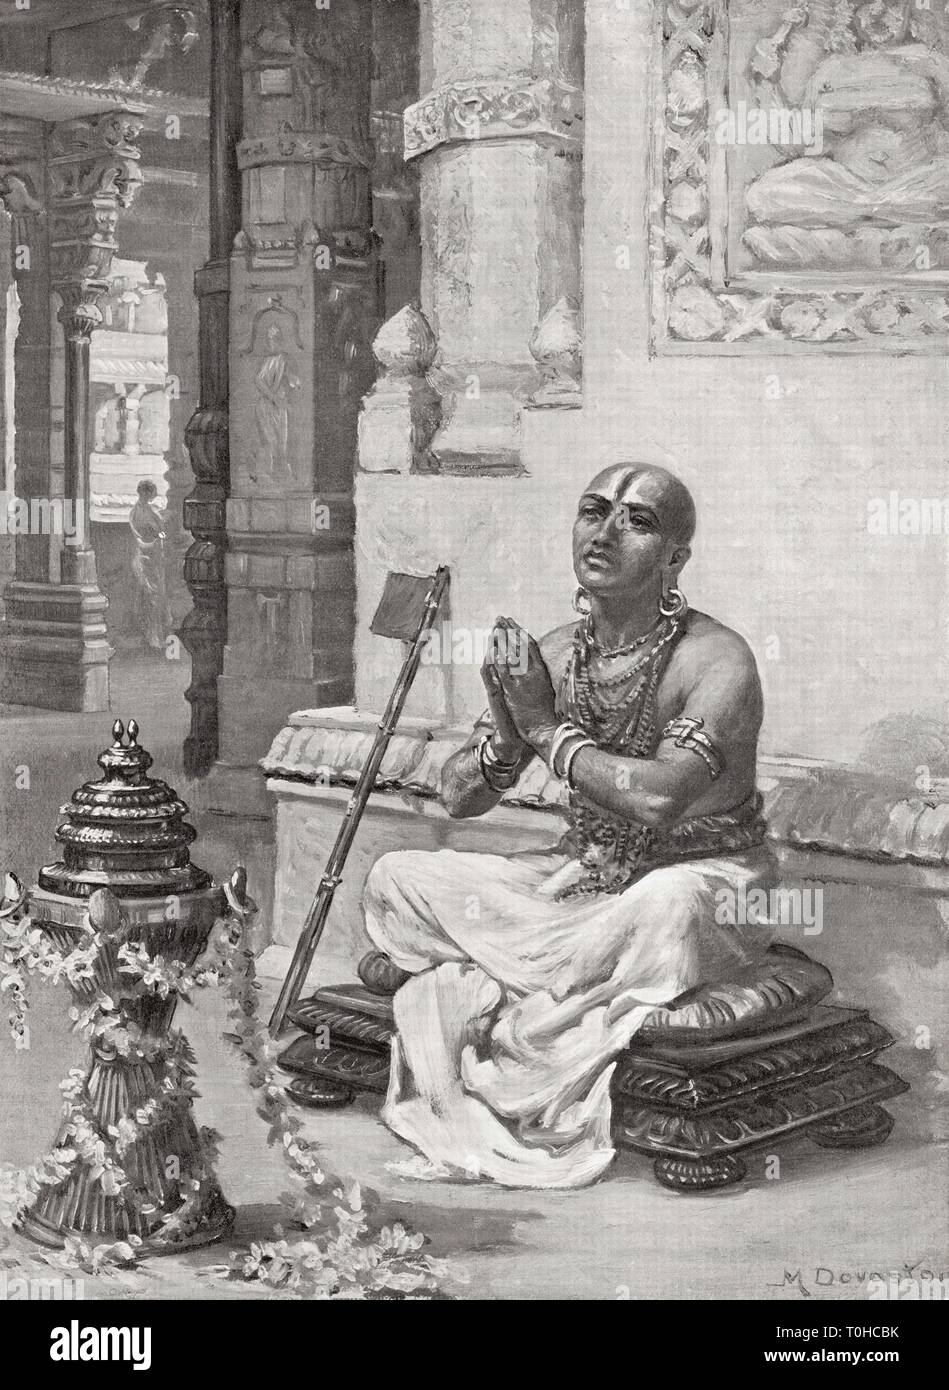 Ramanuja contemplating his philosophy of one personal God Vishnu in 1100 AD - Stock Image